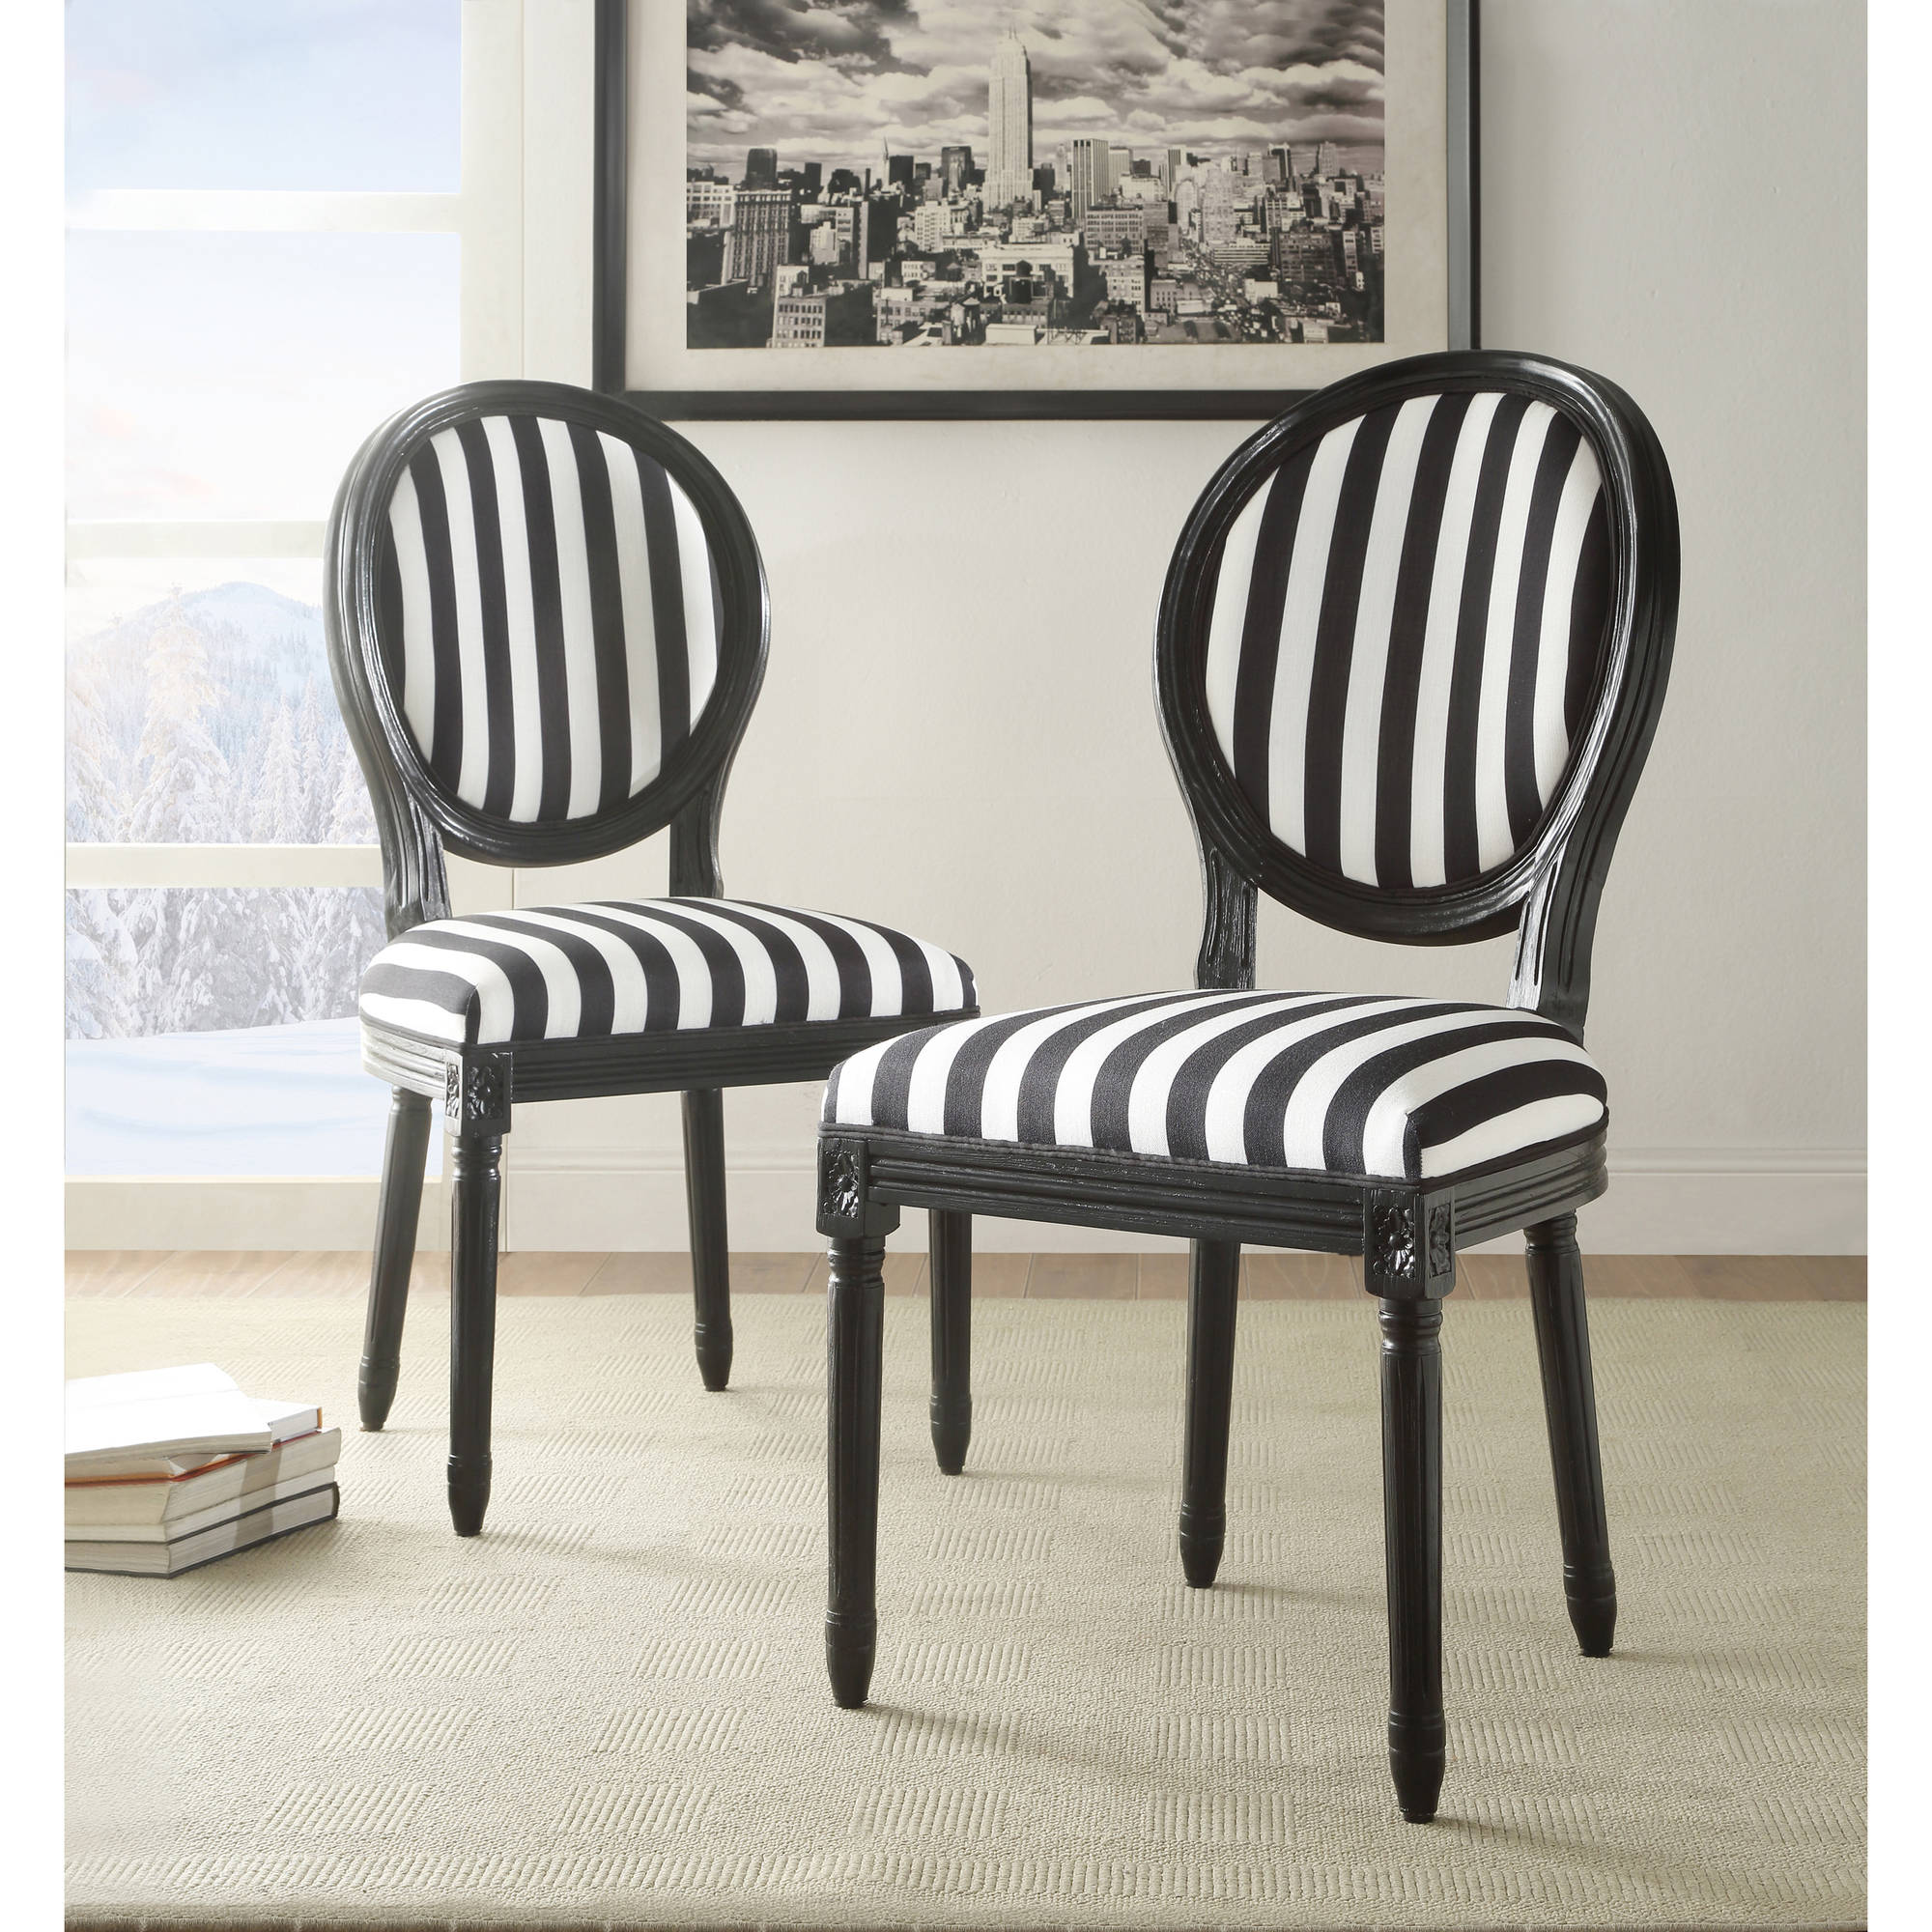 Linon Black and White Stripe Chair, 19 inch Seat Height, Fully Assembled